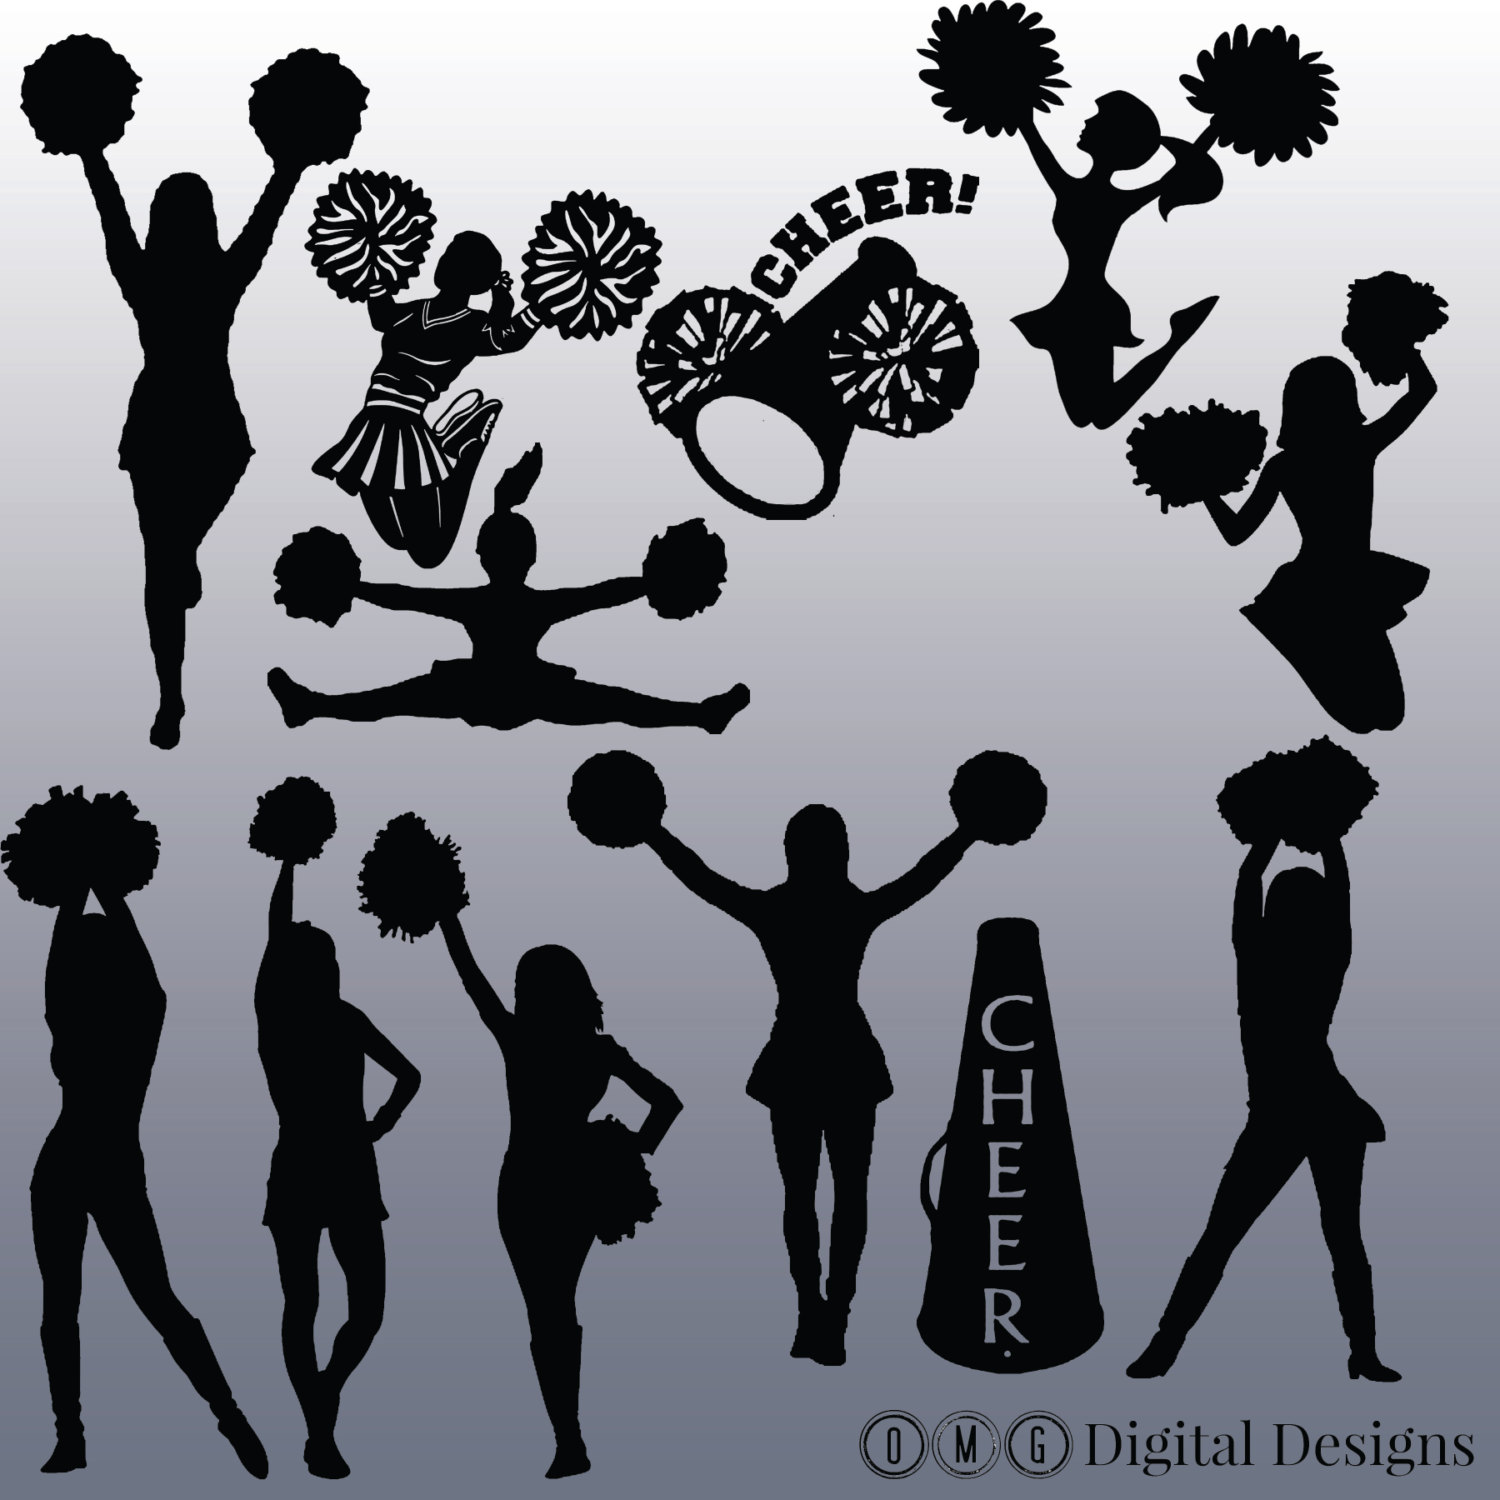 12 Cheerleader Silhouette Digital Clipar-12 Cheerleader Silhouette Digital Clipart Images, Clipart Design Elements, Instant Download, Black Silhouette Clip art-6